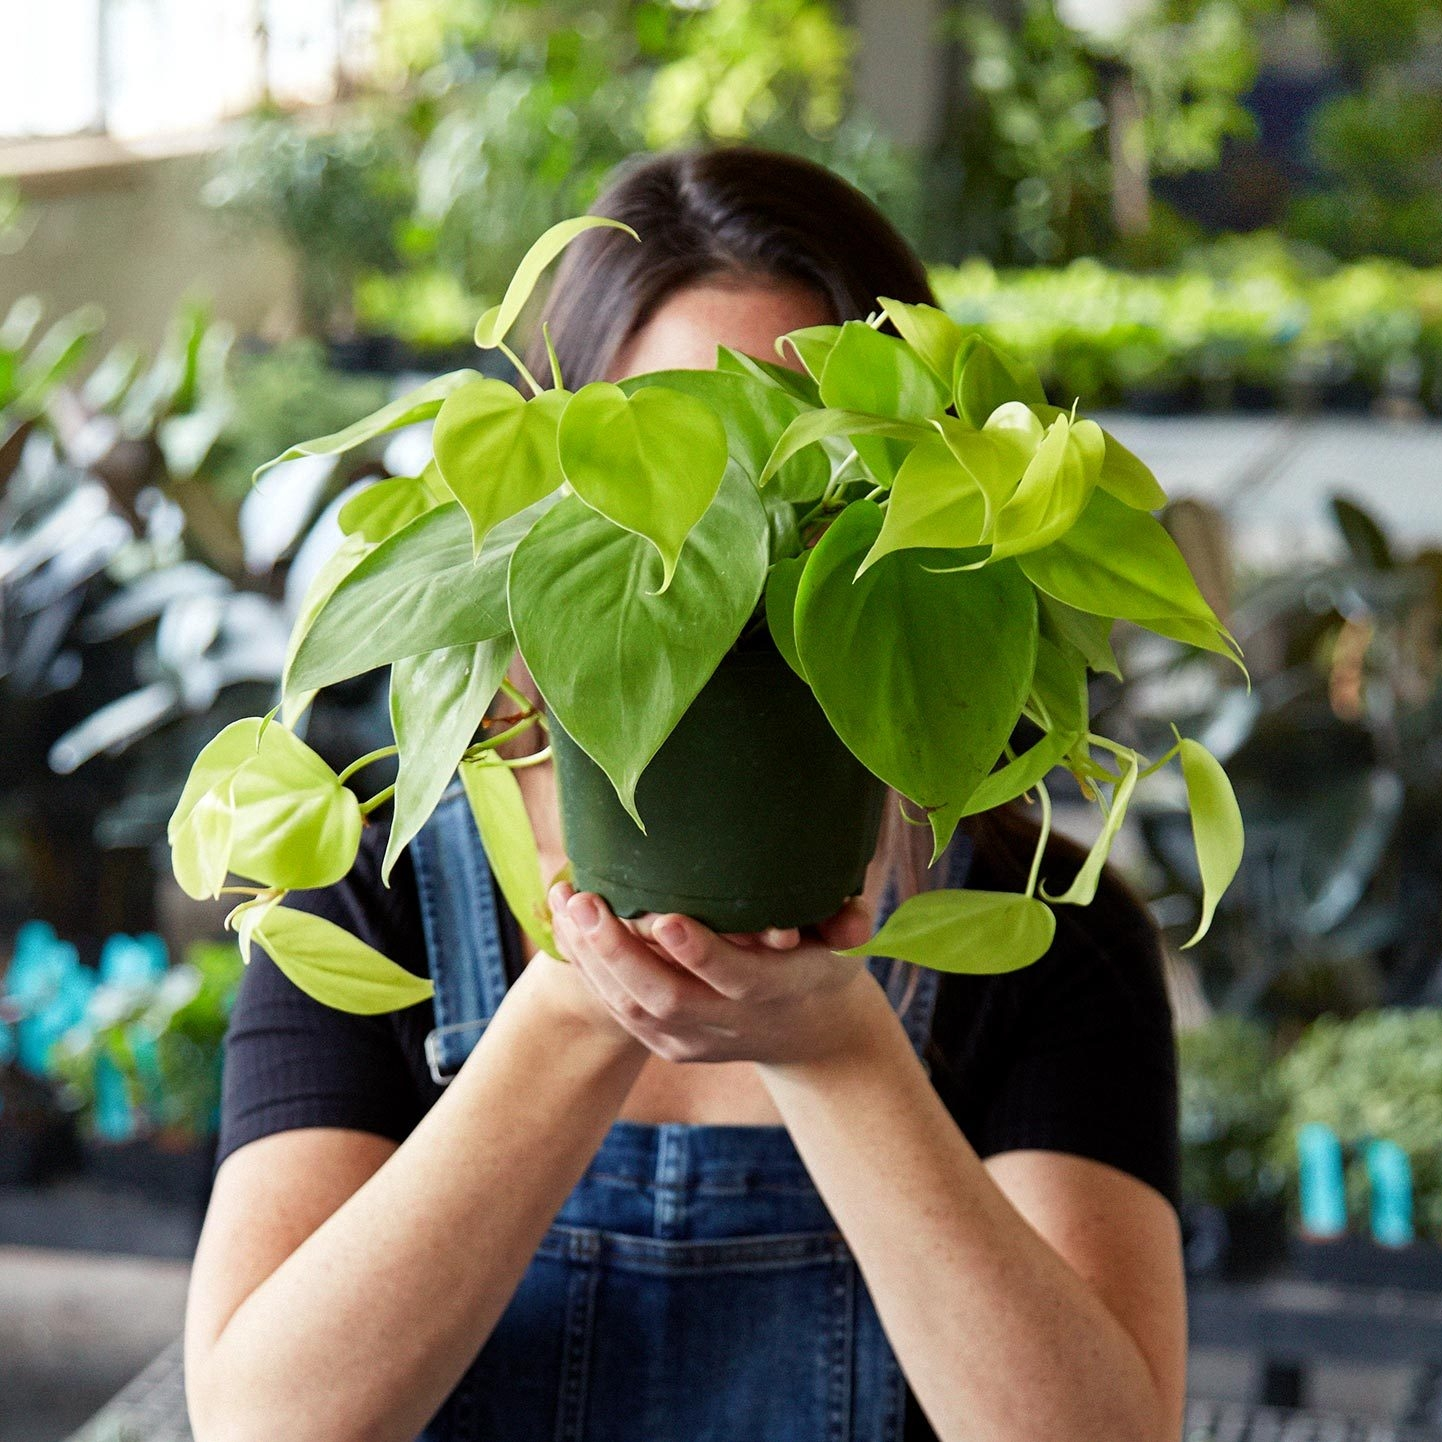 """for """"plantspiration"""" - Get those living spaces spring ready with plant tips from  The Sill . The site is full of plant care articles, access to plant experts, and a web shop where you can shop plants by category (from low light to pet friendly and best for beginners). They even do plant workshops at their store locations in NYC. The Sill believes """"Plants Make People Happy"""" and I certainly tend to agree."""